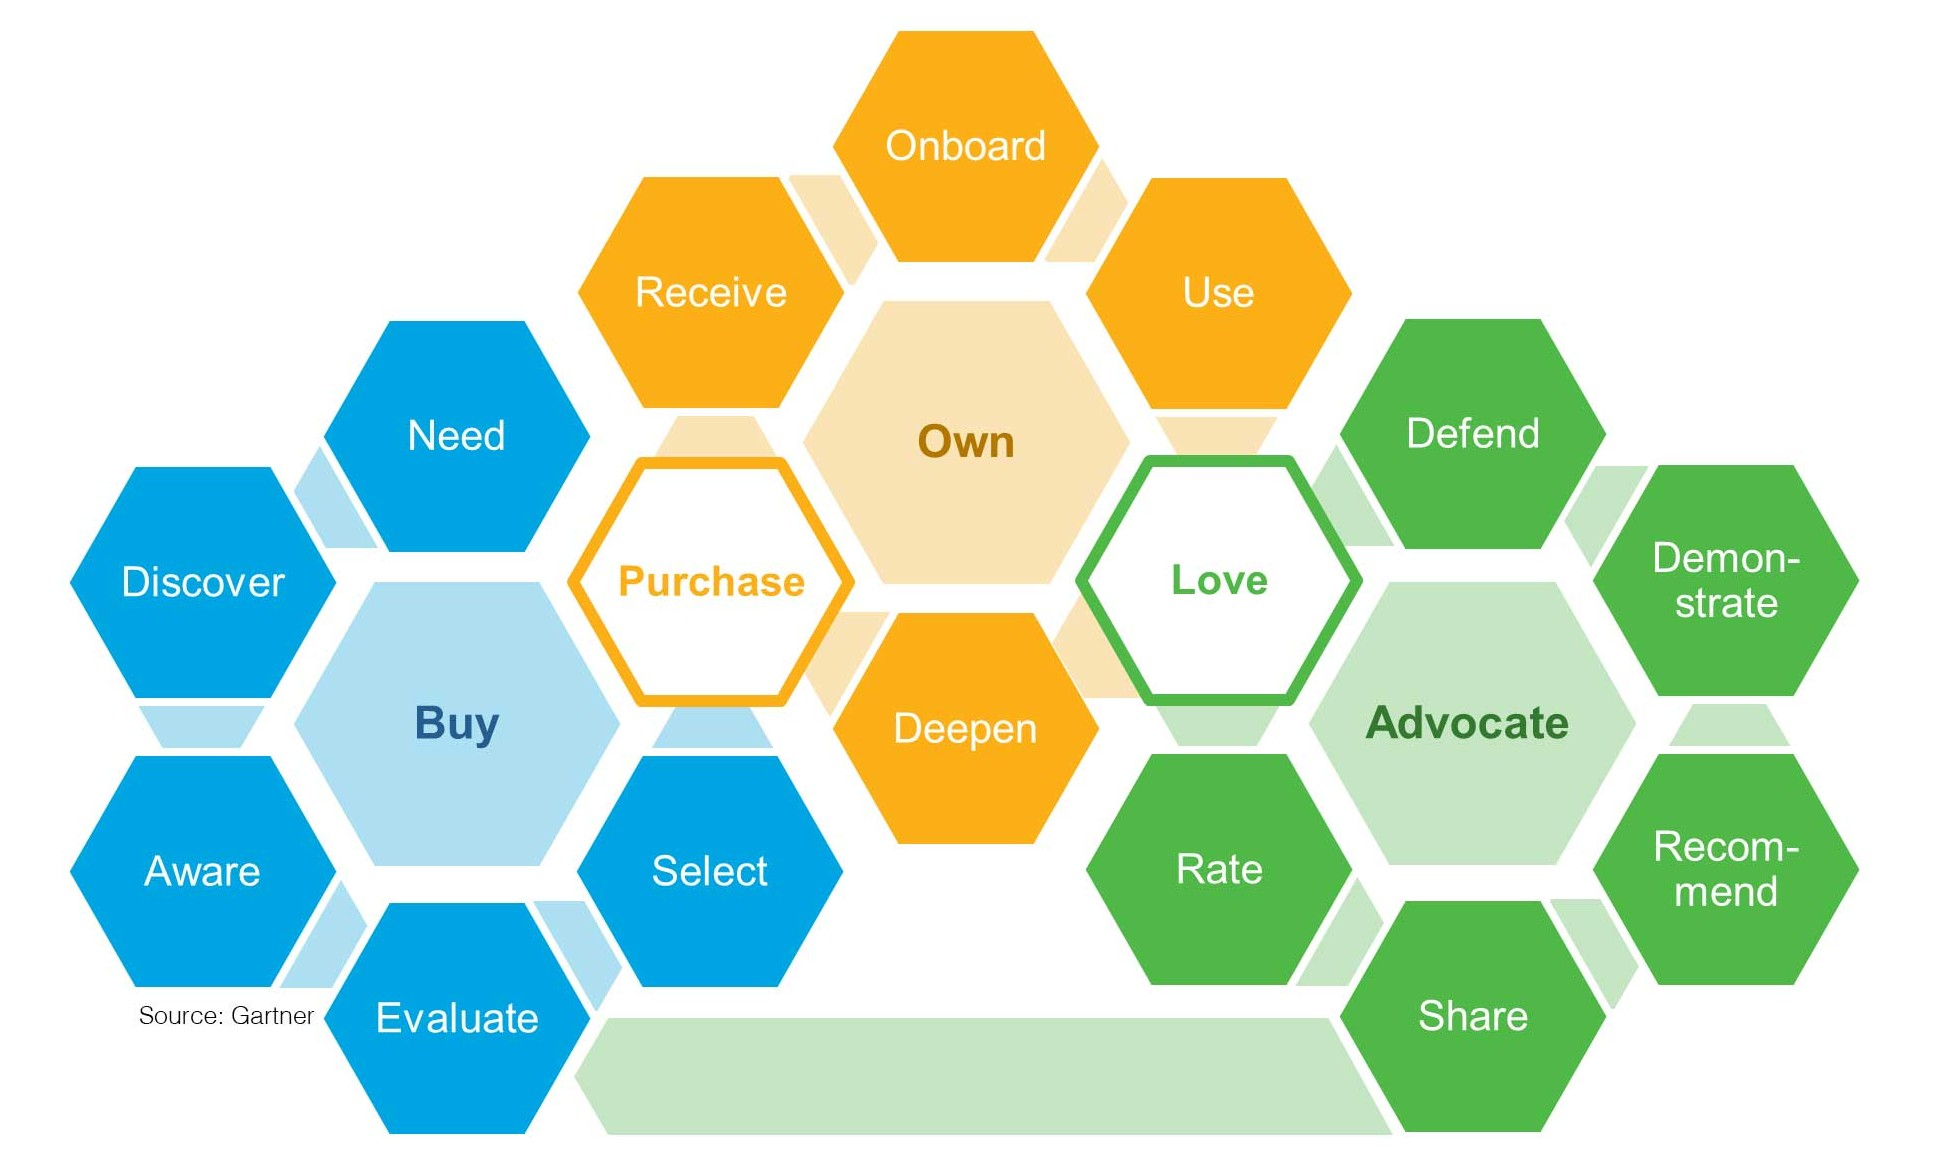 What Is Missing In The New Gartner Buy/Own/Advocate Customer Experience Journey?